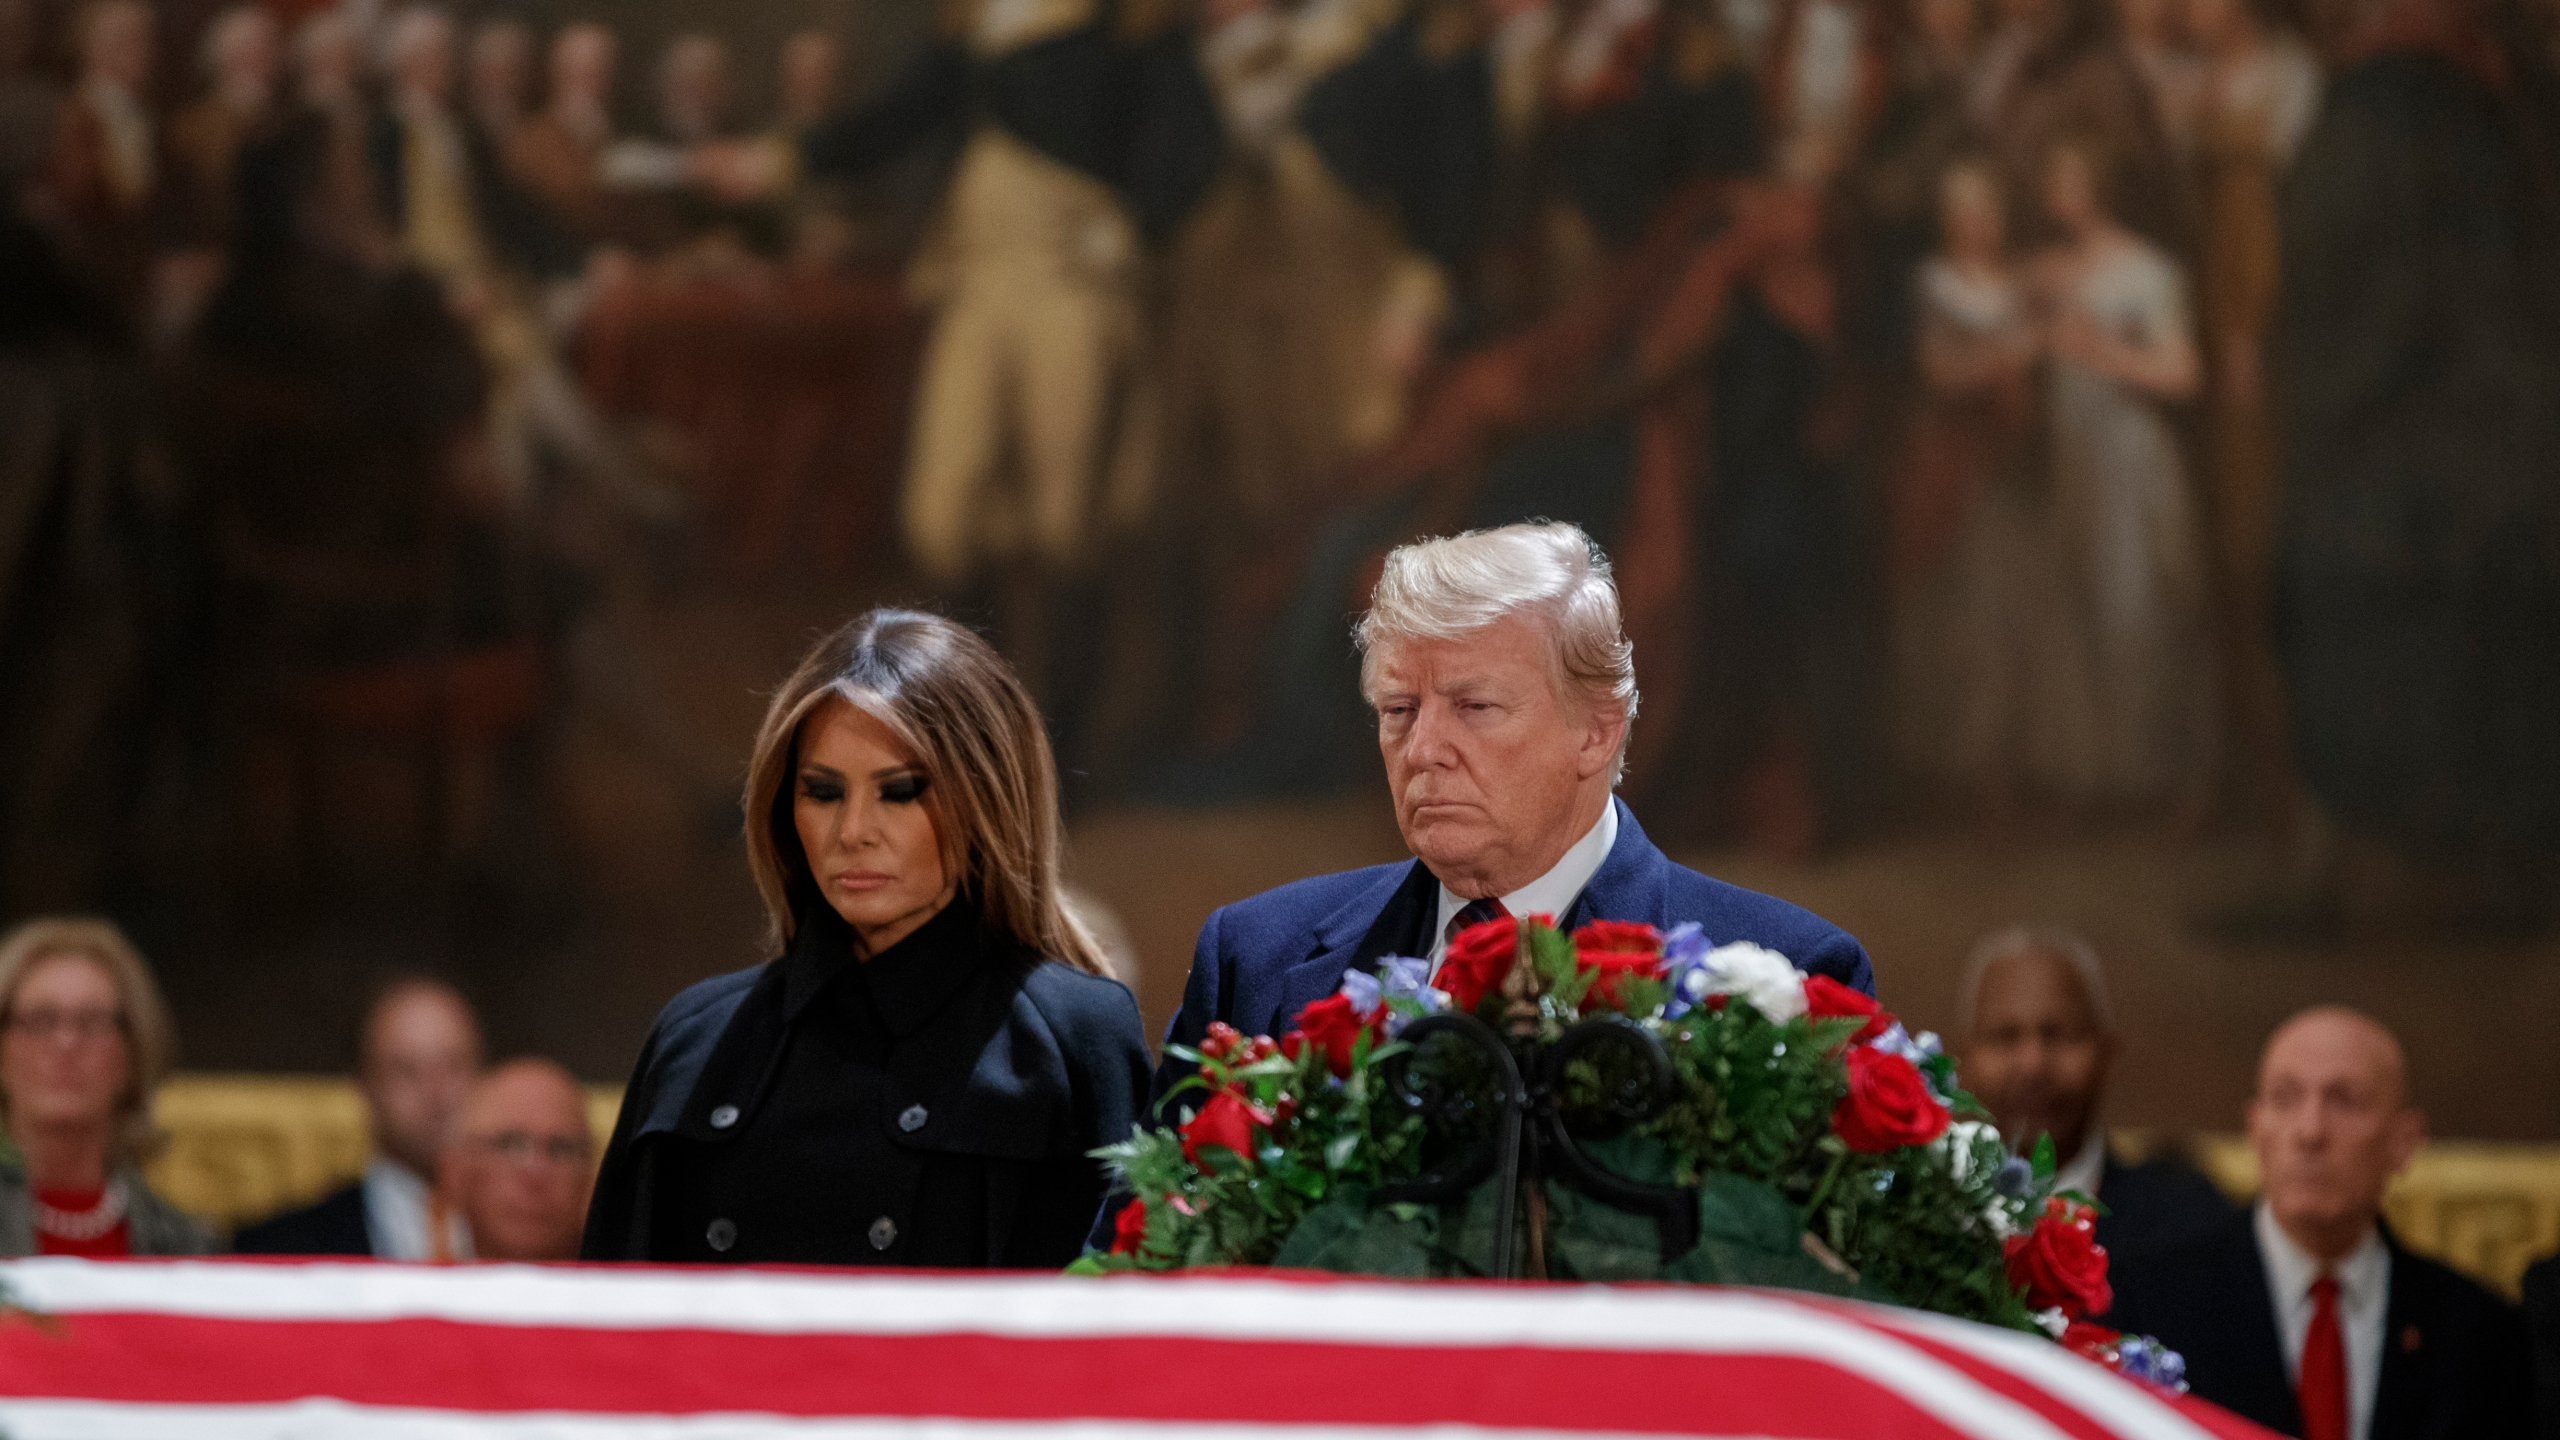 Donald Trump and first lady Melania Trump pay their respects to former President George H.W. Bush as he lies in state in the U.S. Capitol Rotunda on Dec. 3, 2018. (Credit: Shawn Thew-Pool/Getty Images)